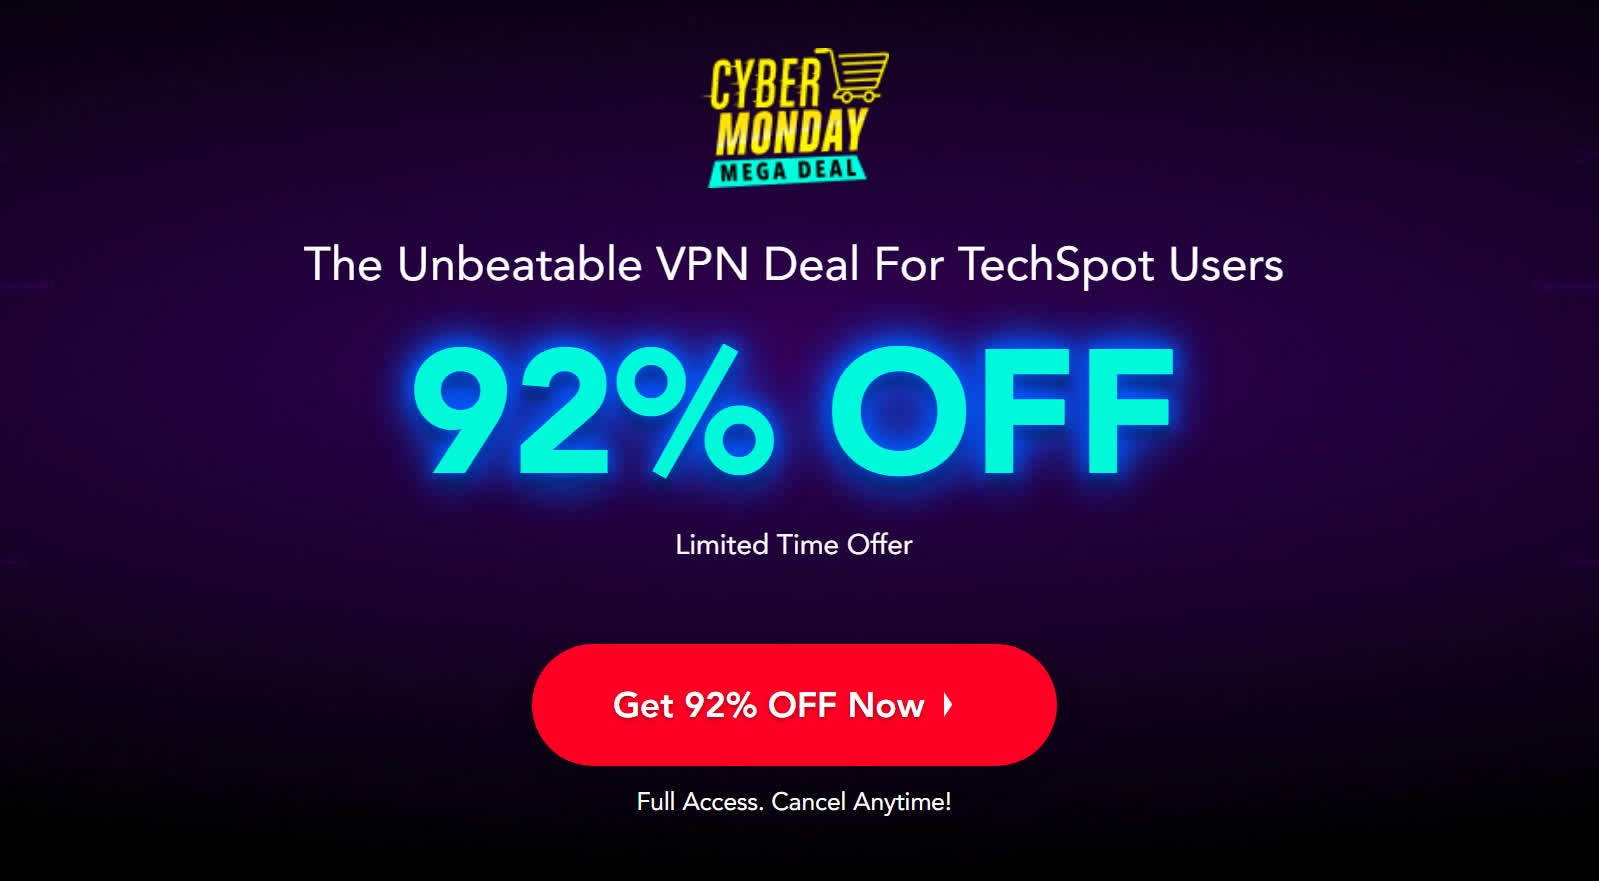 PureVPN goes full blown Cyber Monday with 92% off discount